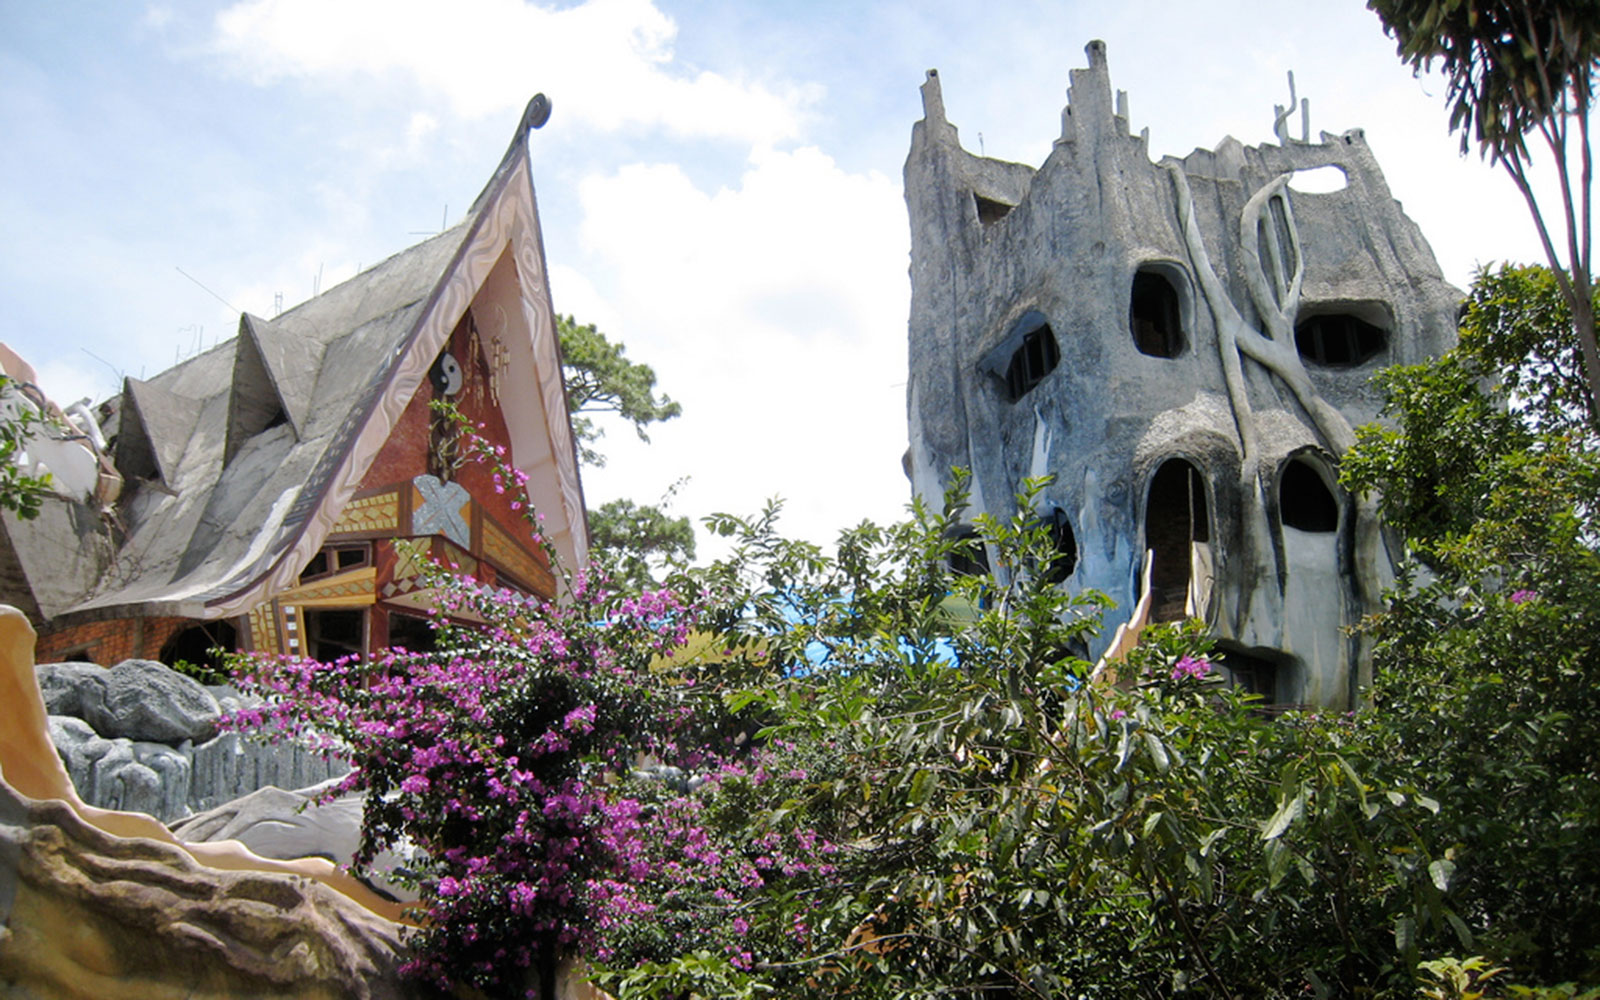 world's most unusual hotels: Hang Nga Guesthouse